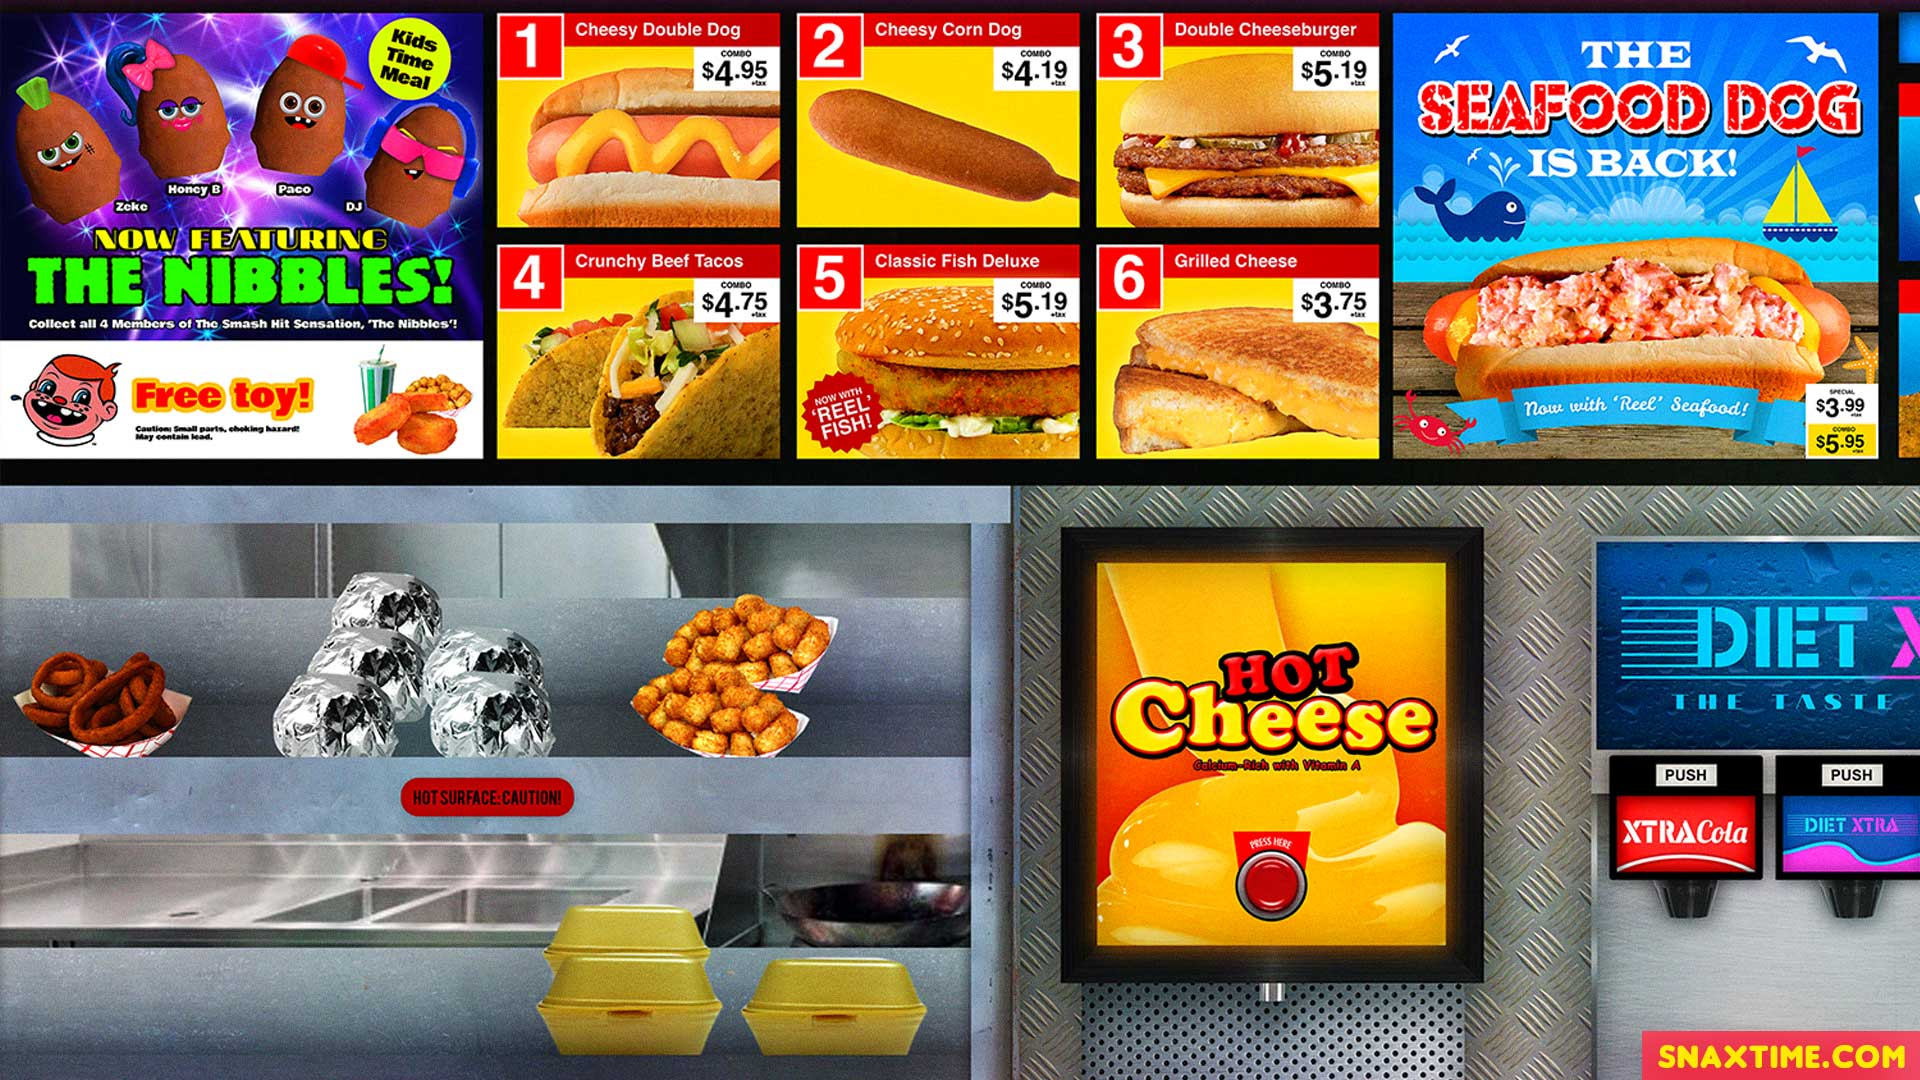 Free Zoom Background - Fast Food Menu Board Cheese Seafood Hot Dog Happy Meal Toys